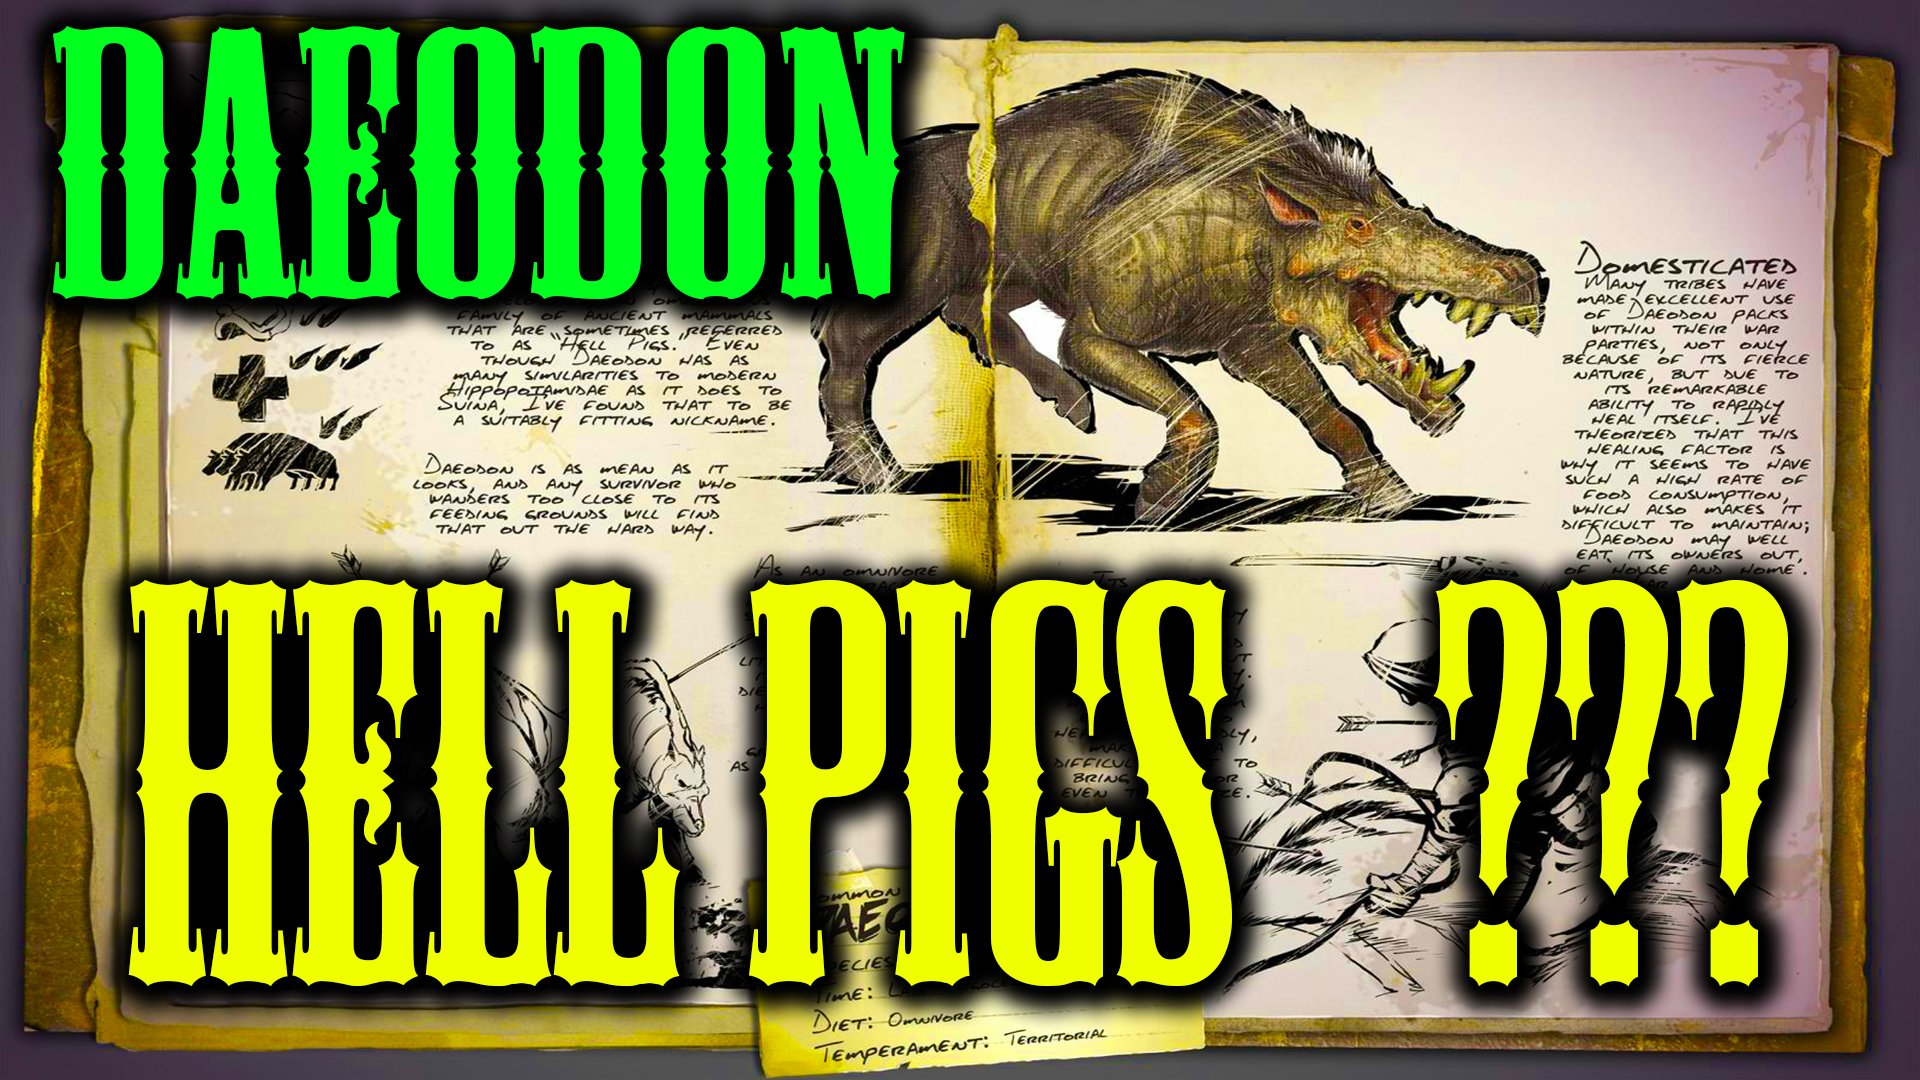 Myndmelt On Twitter New Hell Pigs In Ark Daeodon Check Out The New Ark Dossier Https T Co Aztbuyjsxo Arksurvivalevolved Gaming Pcgaming Survival Https T Co Ezfzkftr6k For an interactive map of explorer notes and other collectibles, see the following pages: daeodon check out the new ark dossier